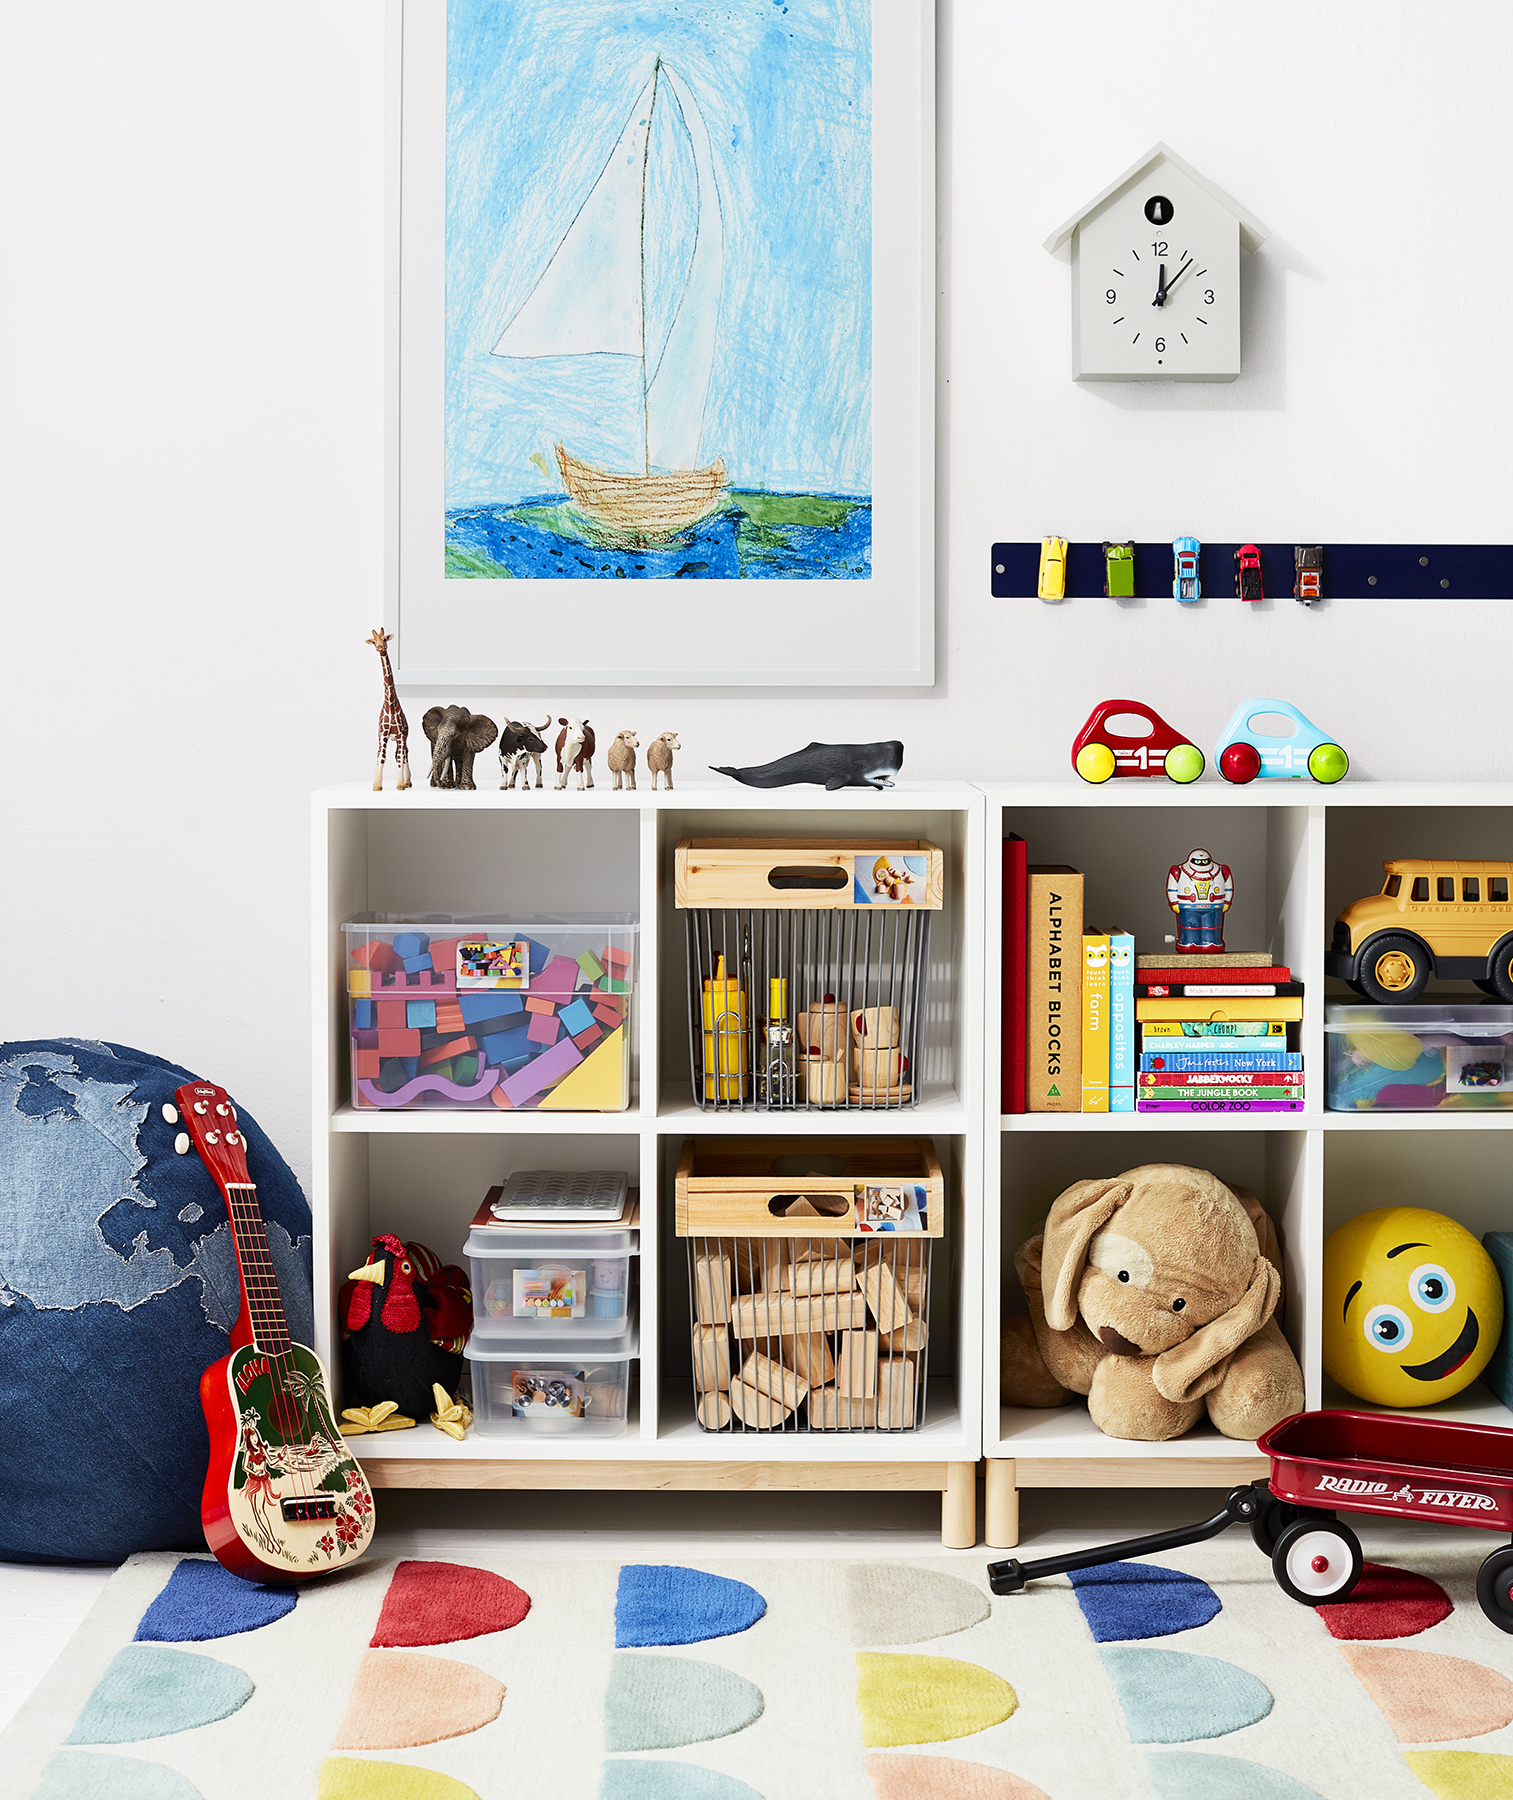 Kids' room shelves, toys